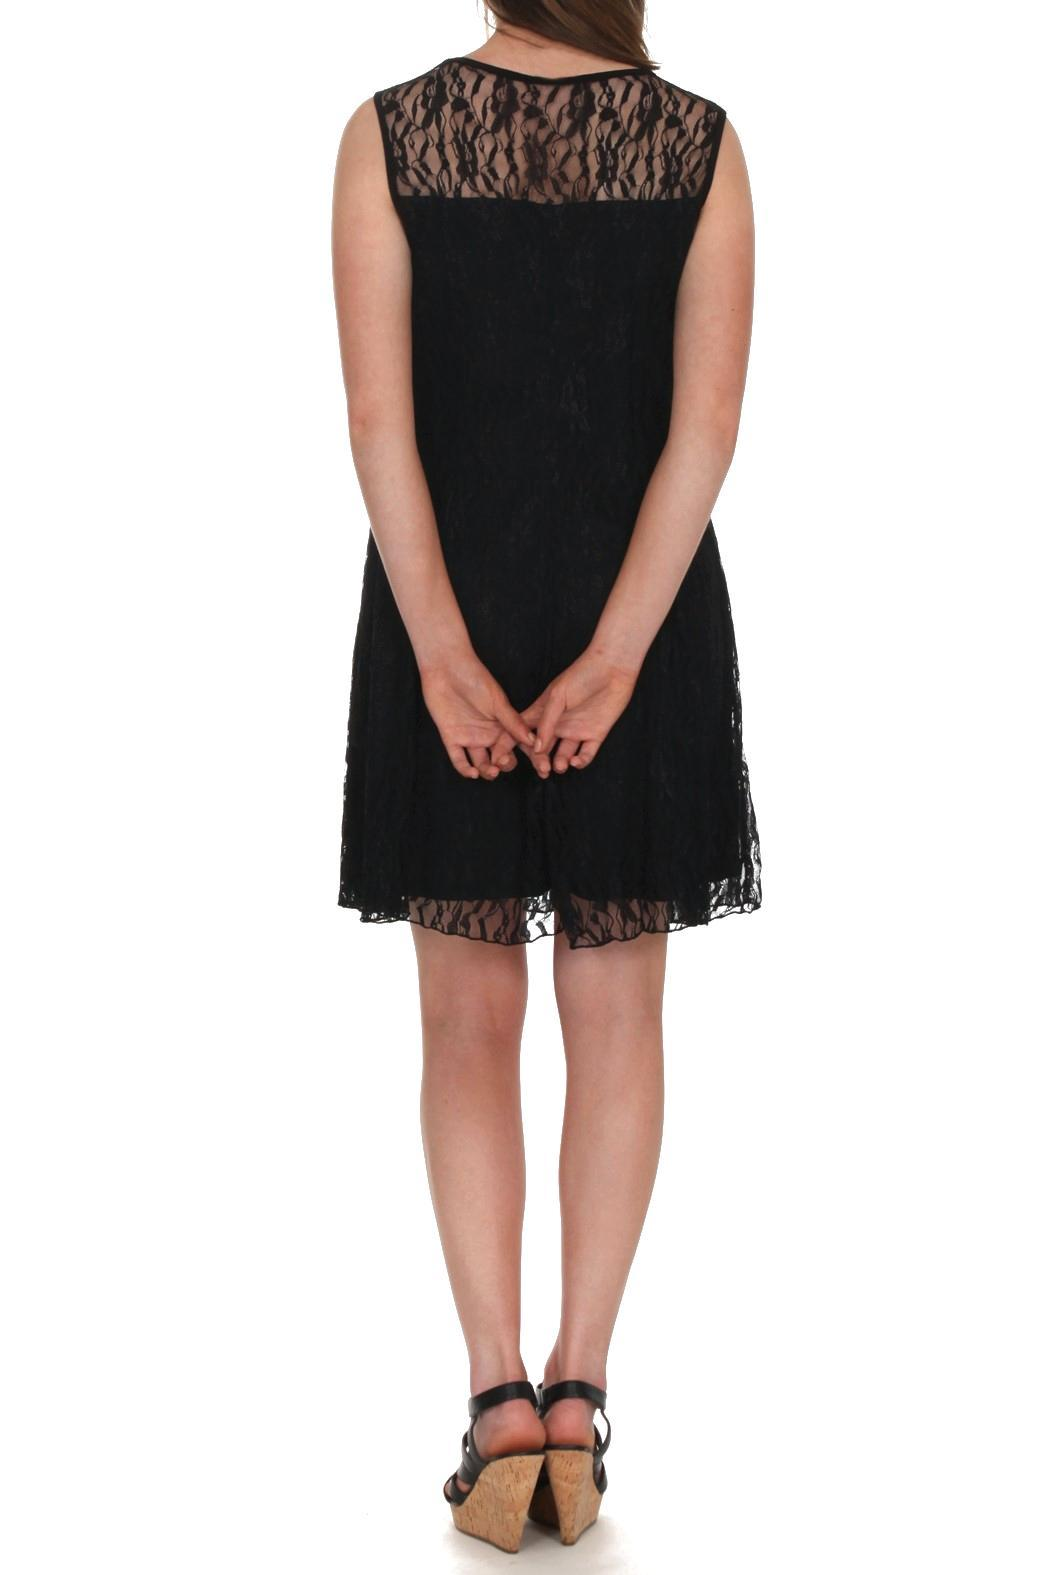 Mode Vin Rouge Black Lace Dress - Side Cropped Image